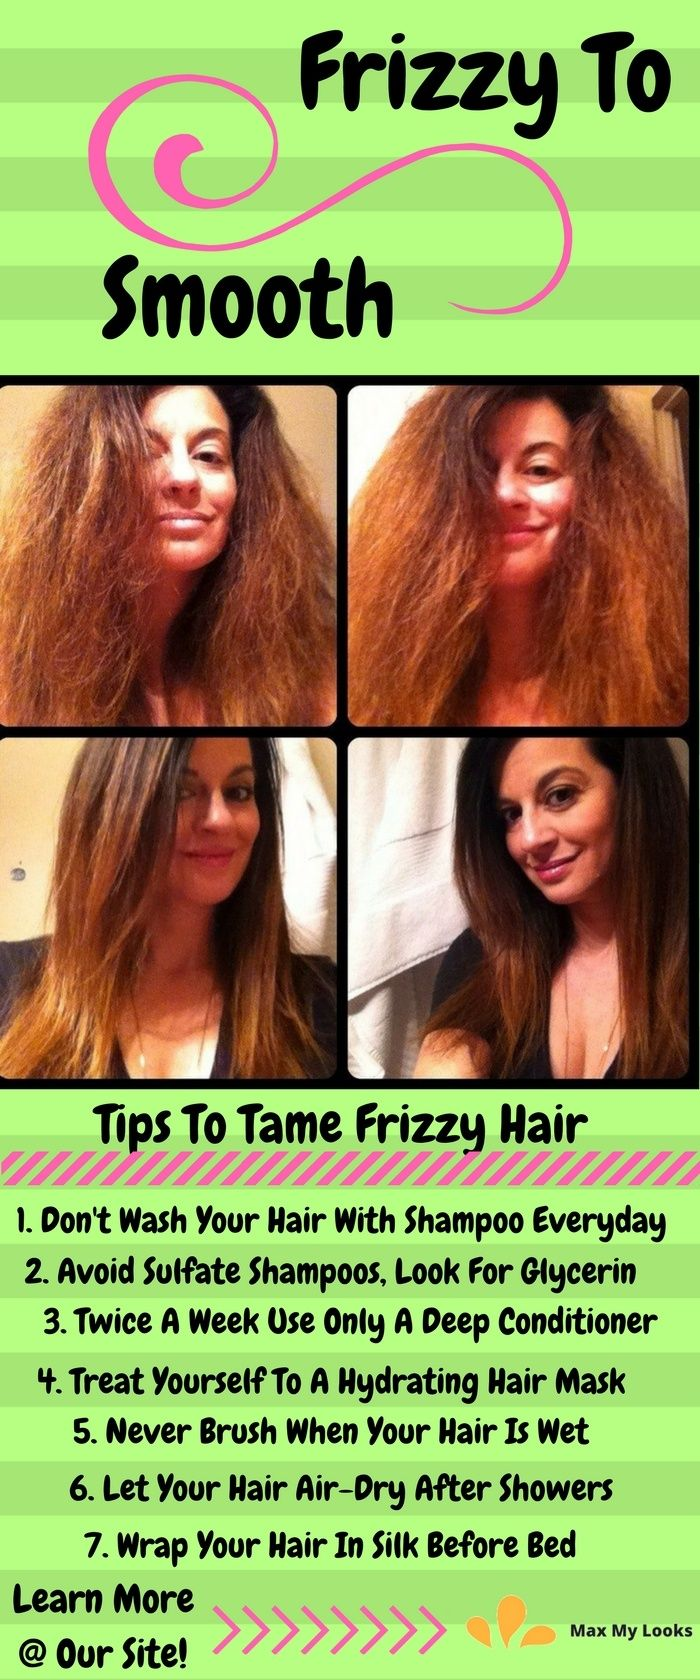 How To Tame Frizzy Hair Tips And Tricks To De Frizz Forever